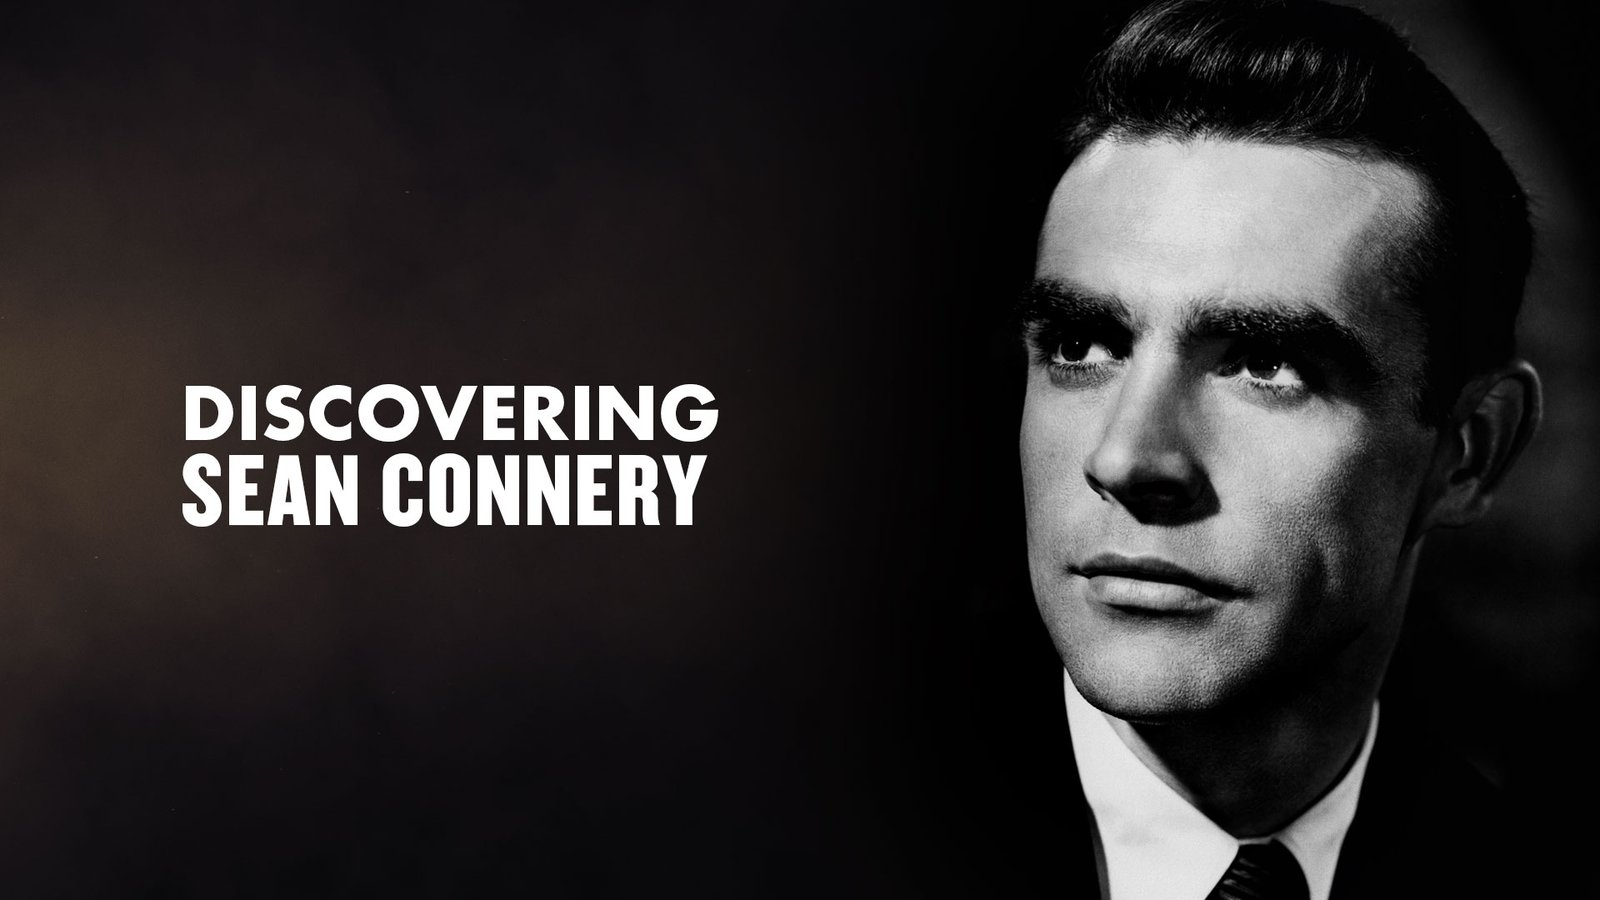 Discovering Sean Connery